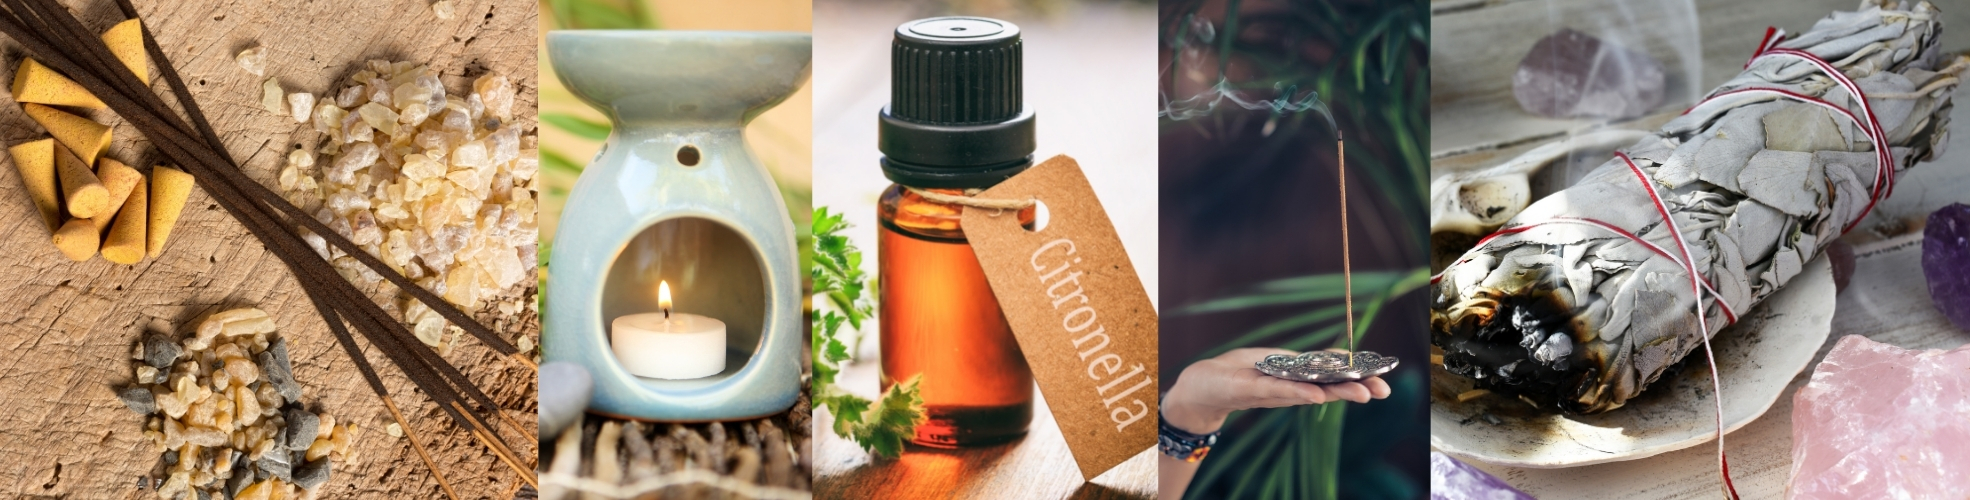 Wholesale Aromatherapy Products | Citronella | Essential Oils | Fragrance Oils | Resin Incense | Oil Burners | Air Fresheners | Smudge Sticks